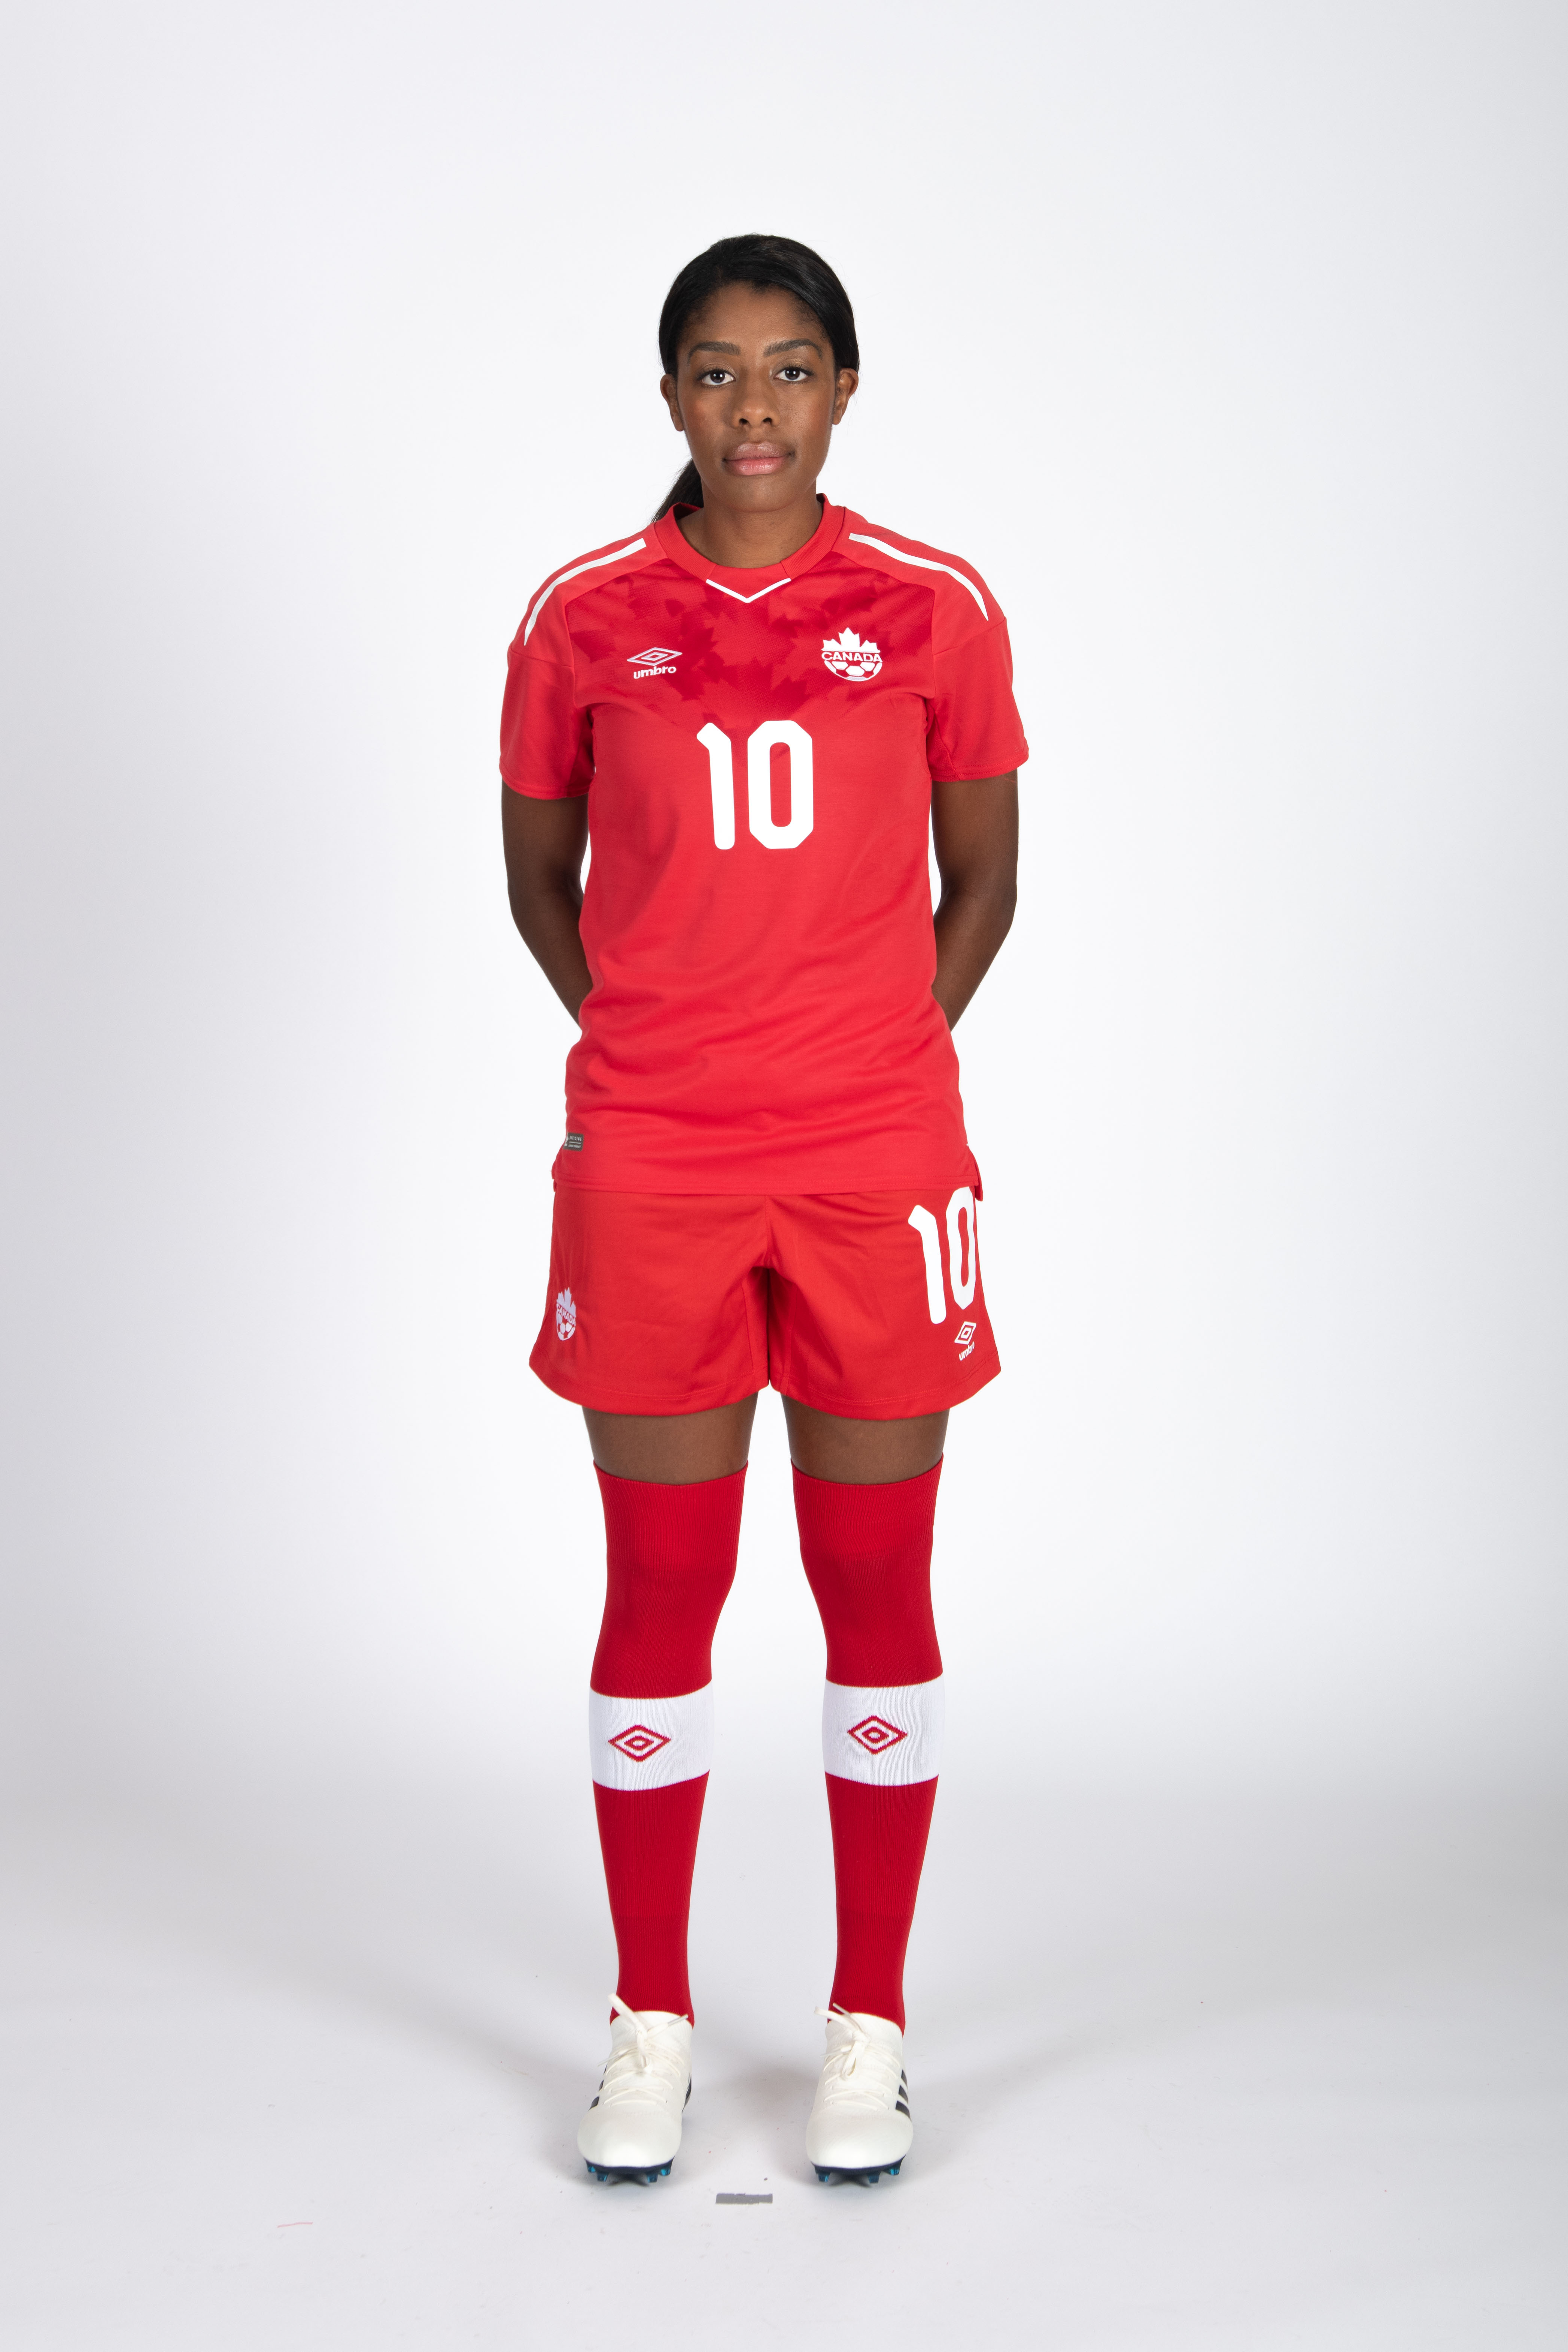 20180604_CANWNT_Lawrence_byBazyl02